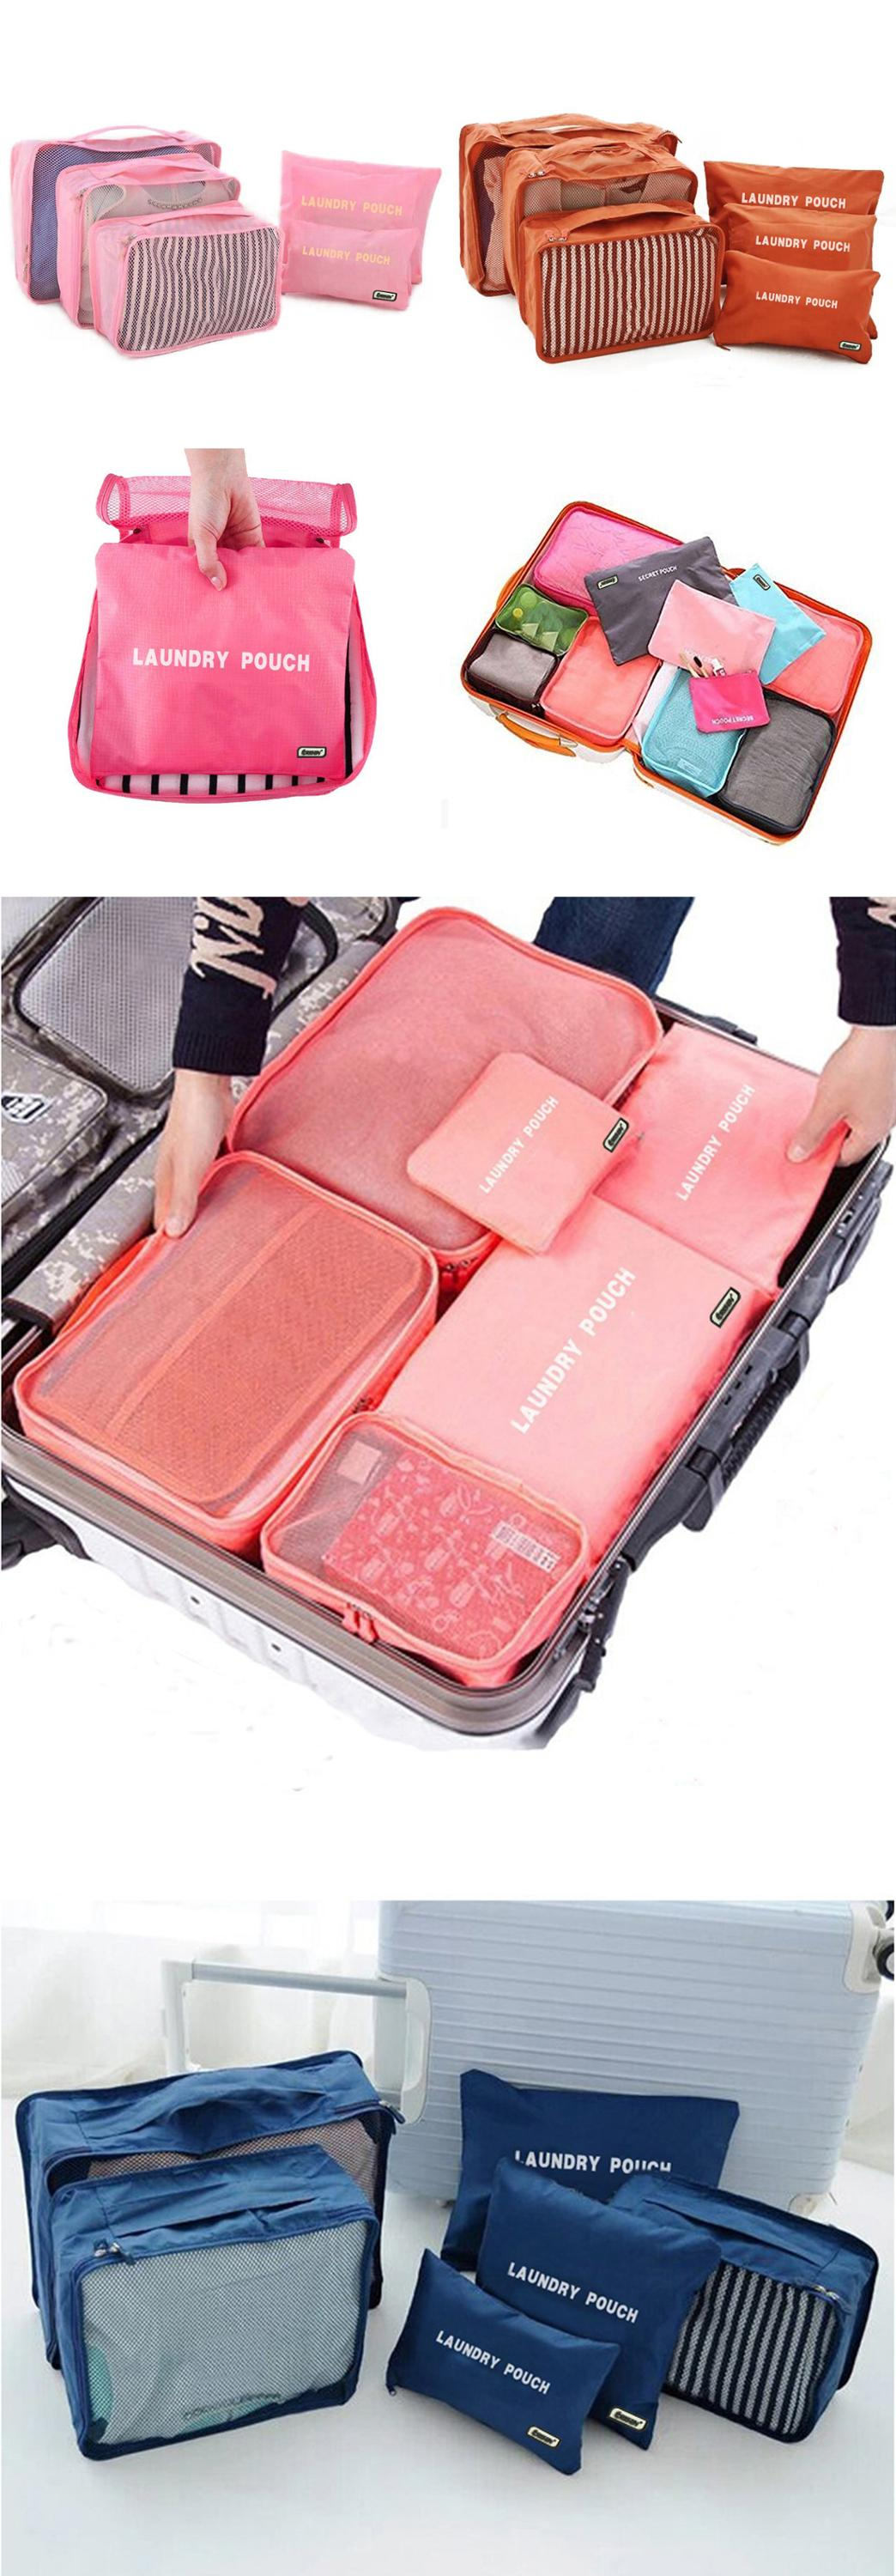 7 Set Compression Travel Luggage Organizer Packing Cubes with Shoe Bag